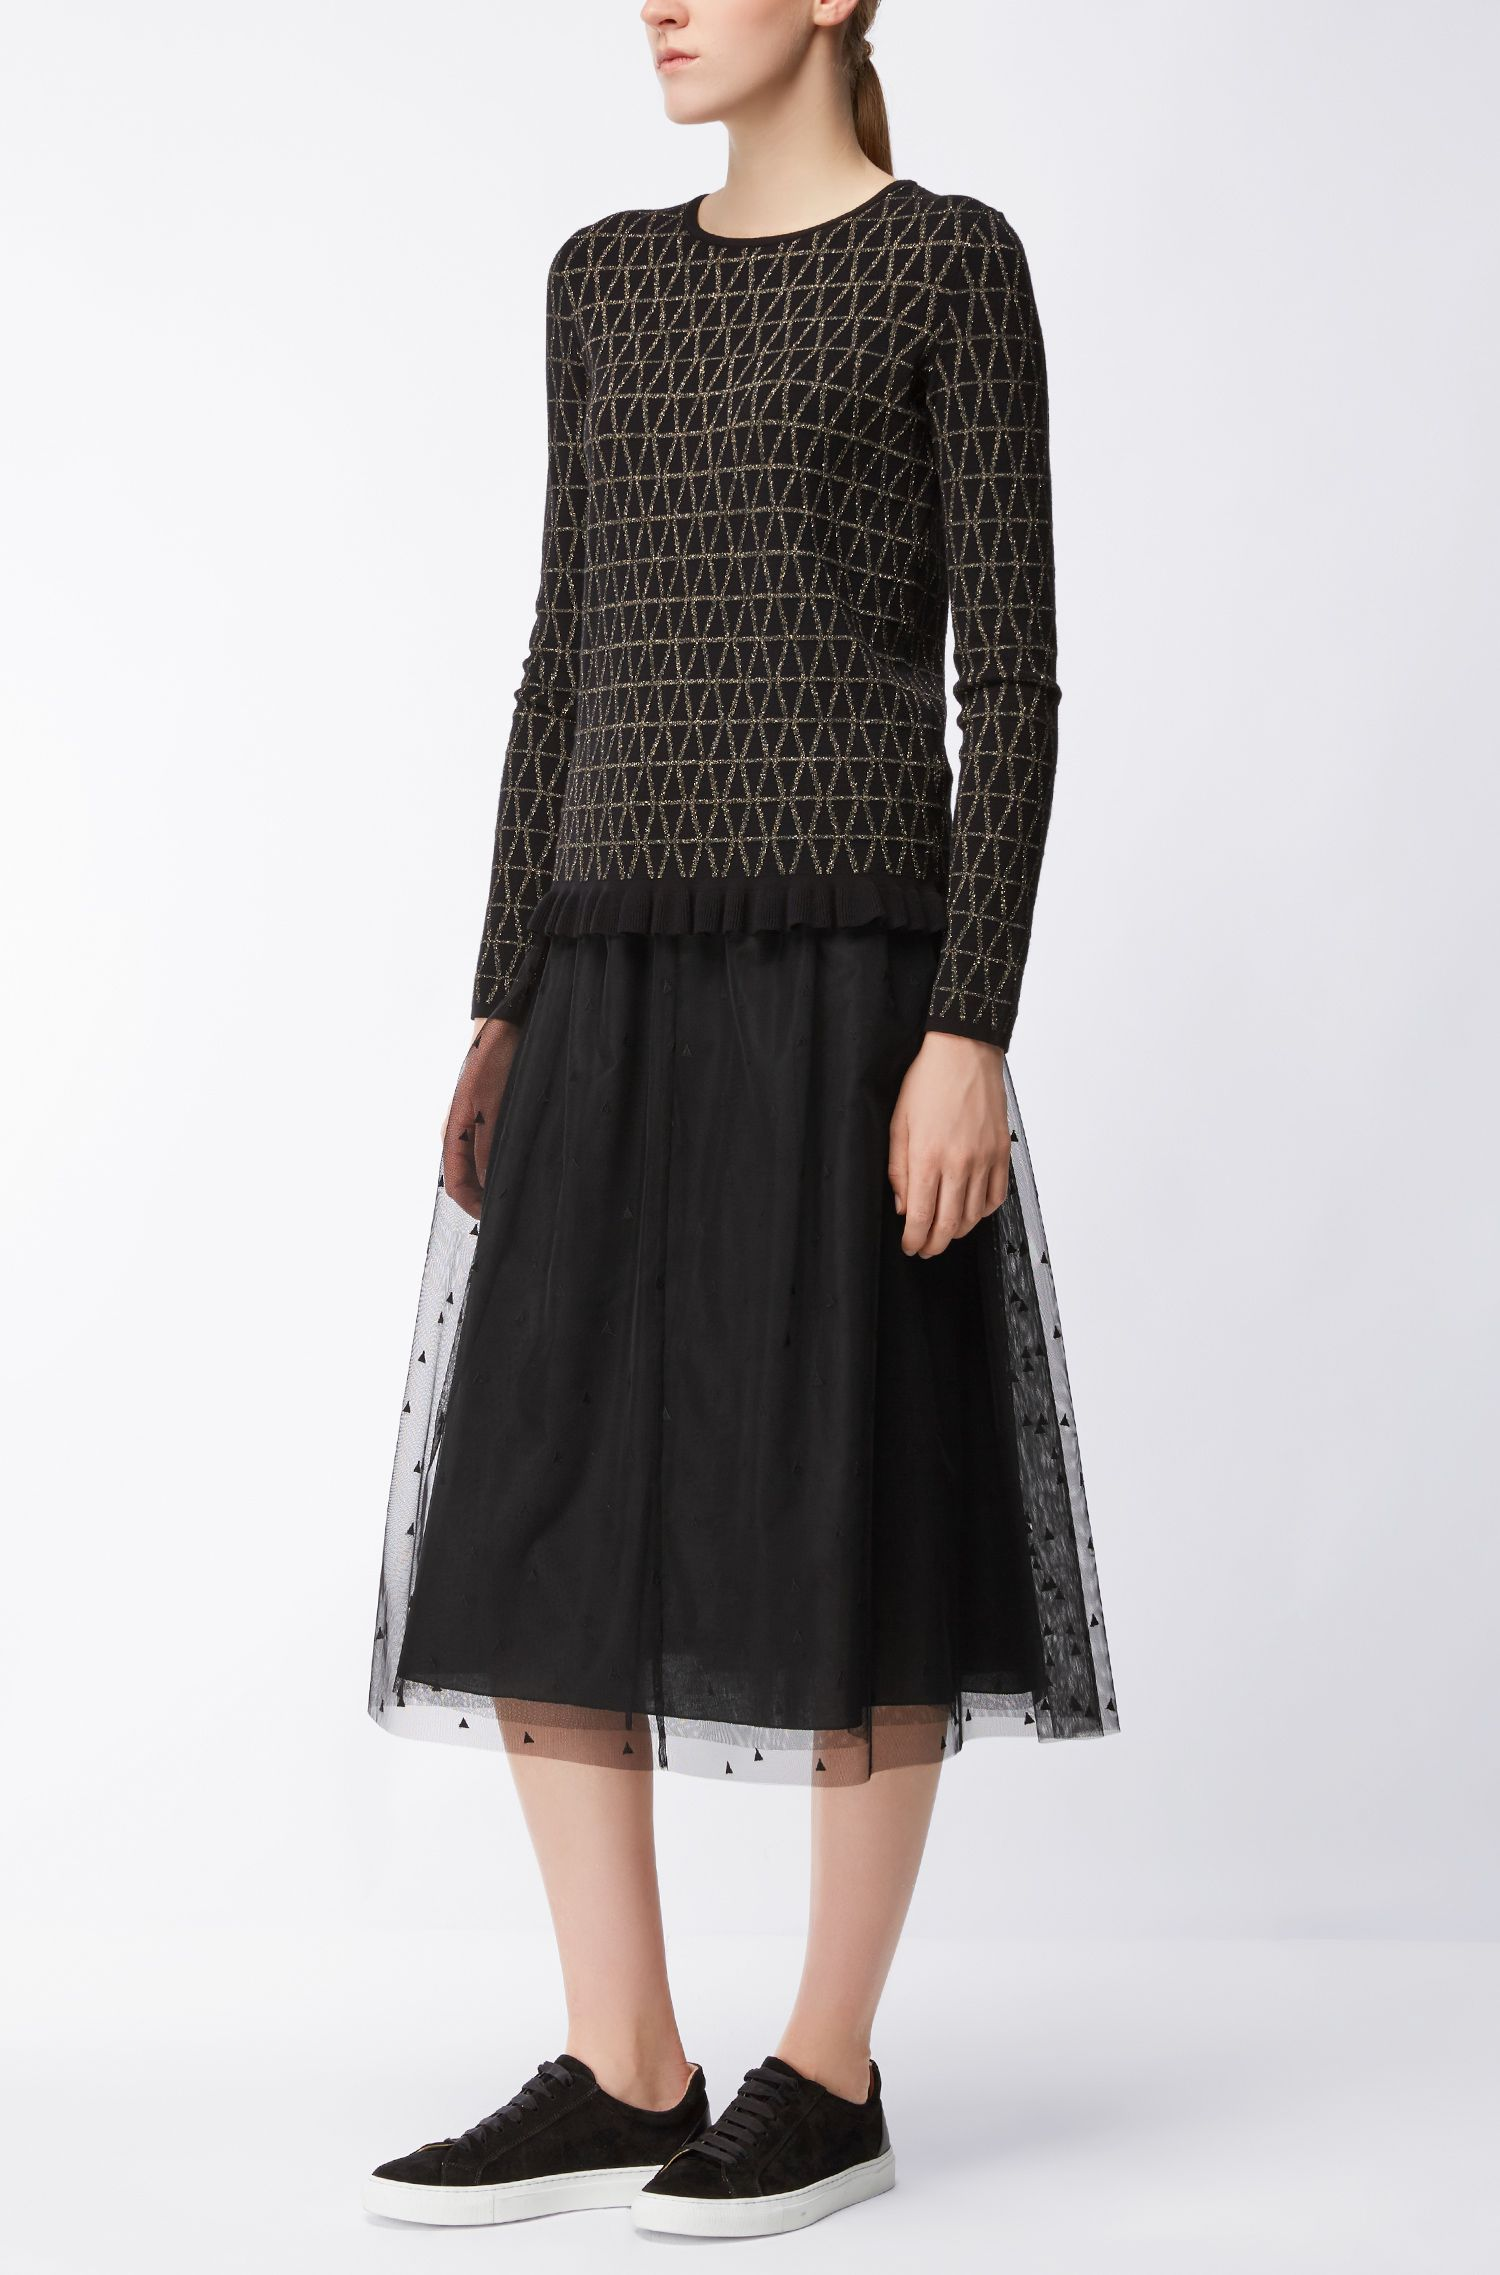 Midi-length A-line skirt in layered tulle